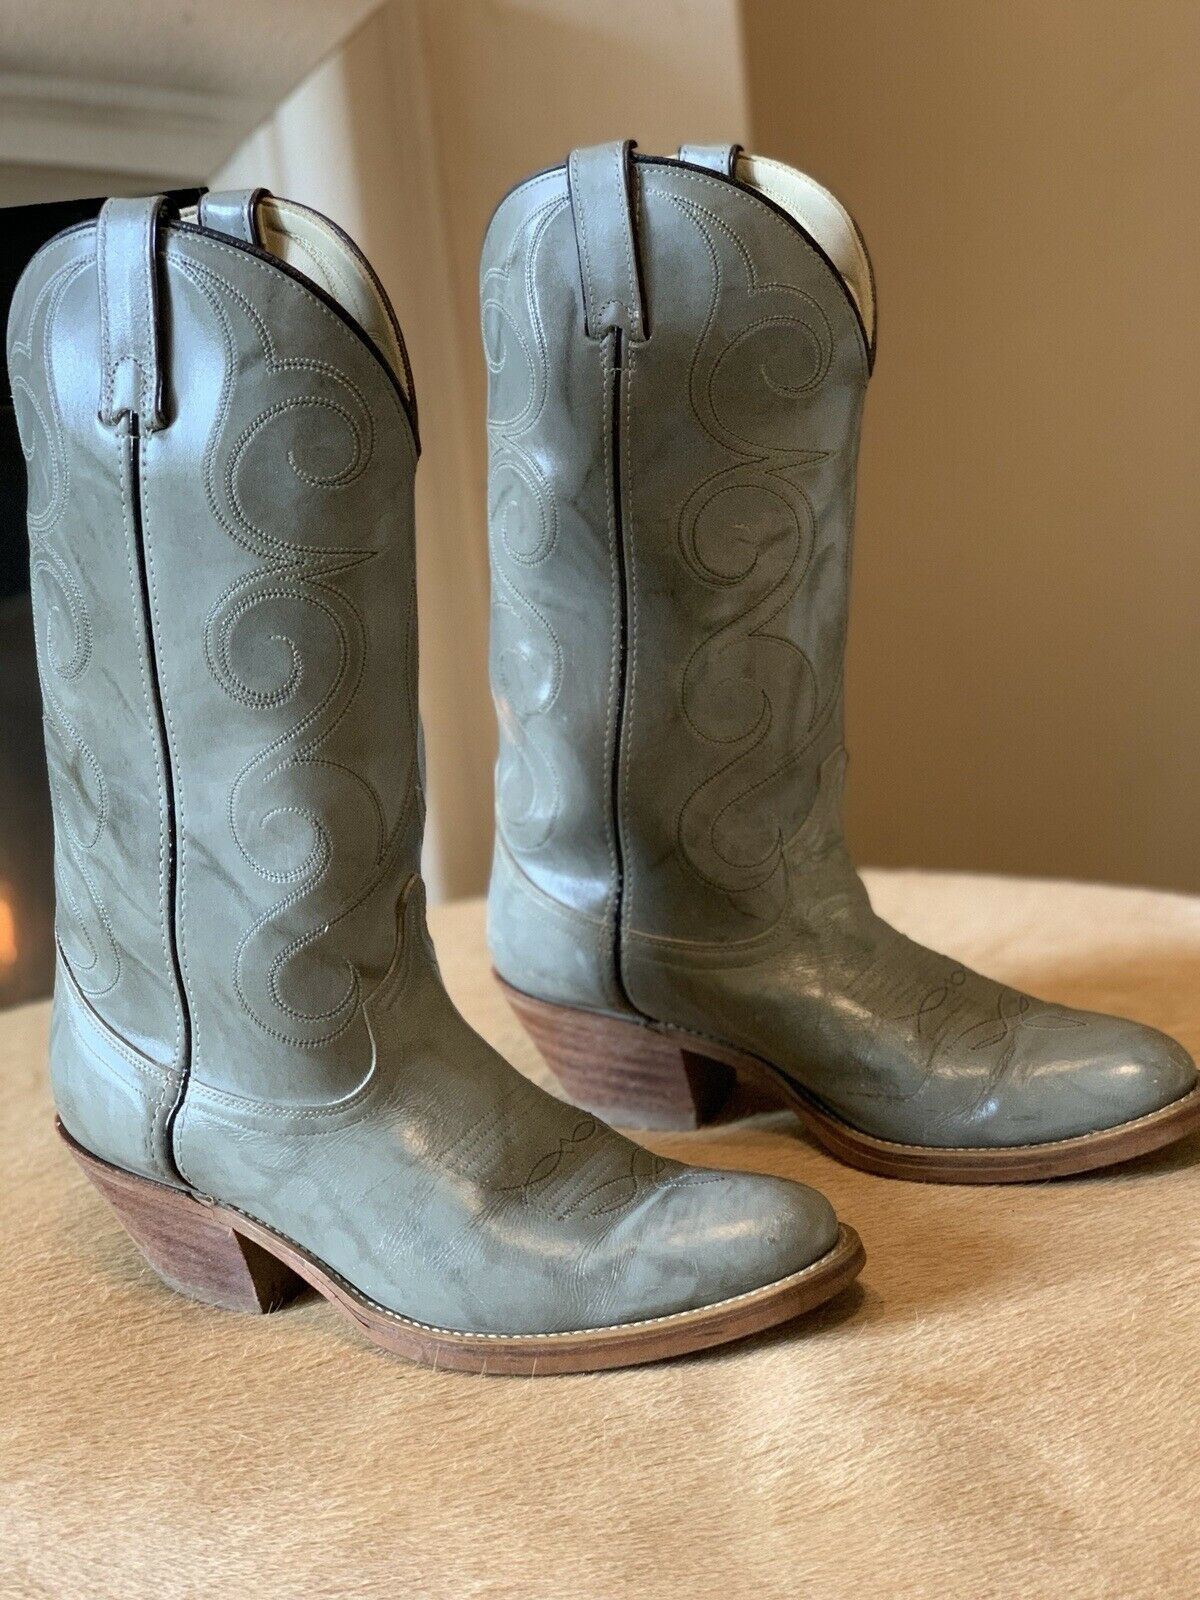 Men's ACME (Style 4615) Grey Cowboy Boots, 10D. CHECK OUT THE HEELS!!